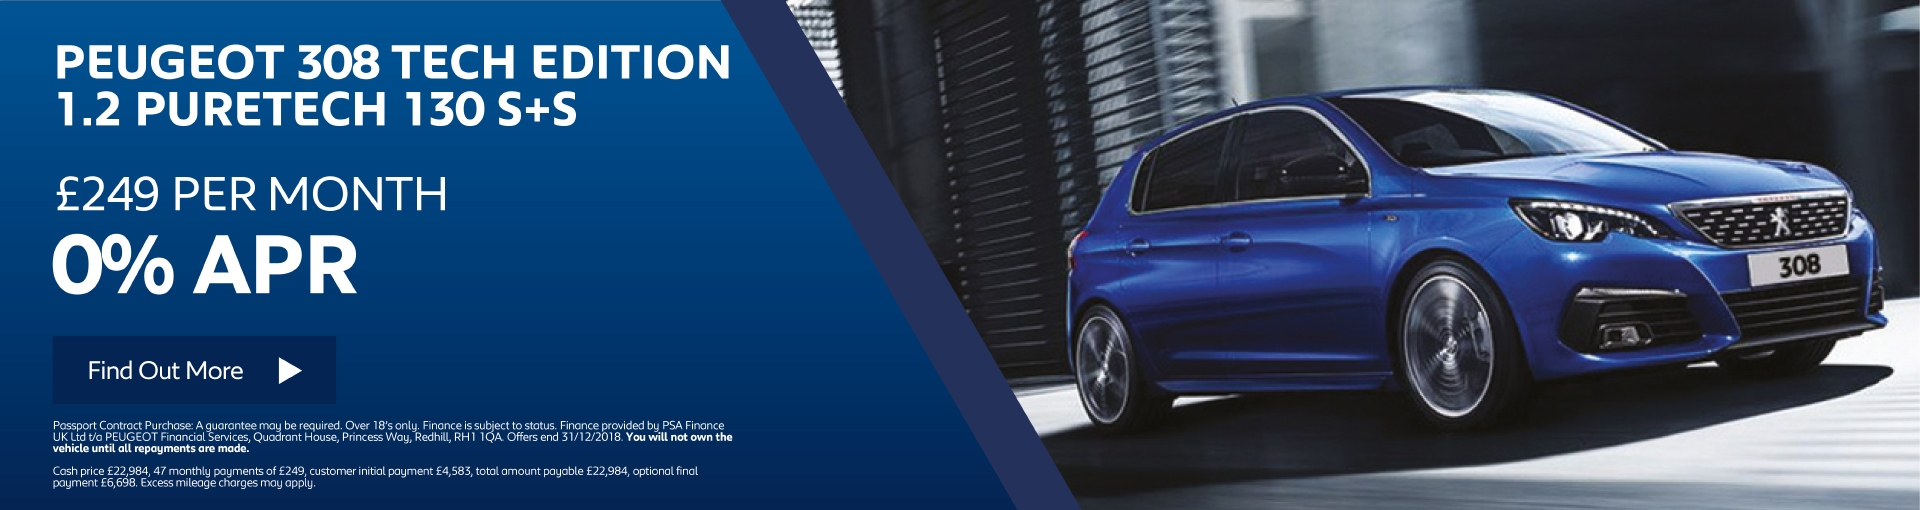 New Peugeot 308 Tech Edition - £249 per month